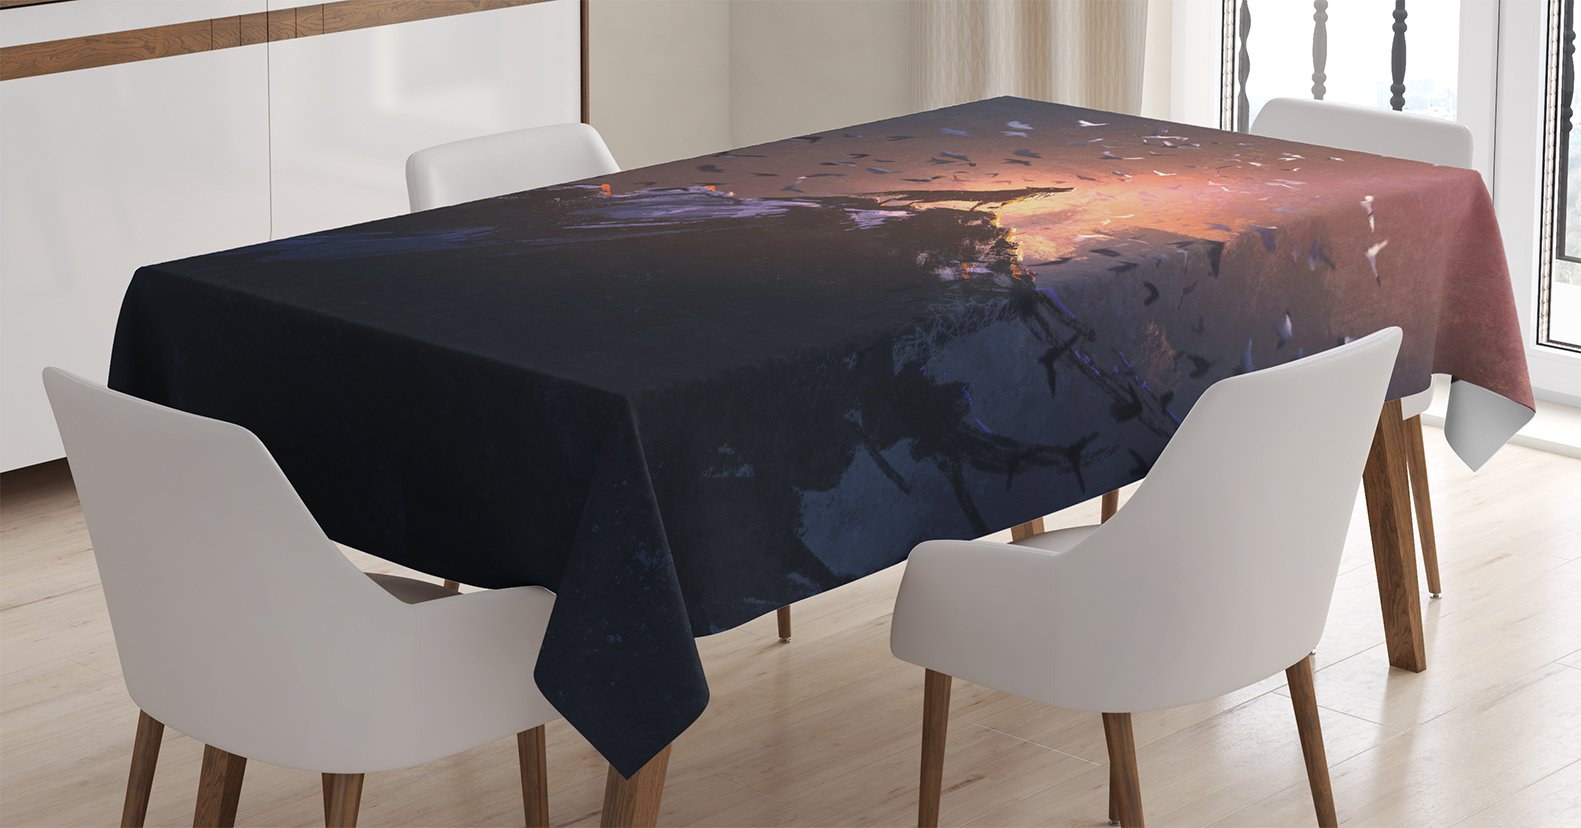 Ambesonne Fantasy World Decor Tablecloth, Howling Wolf on a Rock Surrounded by Bats Birds Scary Dog Wild Life Animals Picture Art, Rectangular Table Cover for Dining Room Kitchen, 52x70 inch, Multi